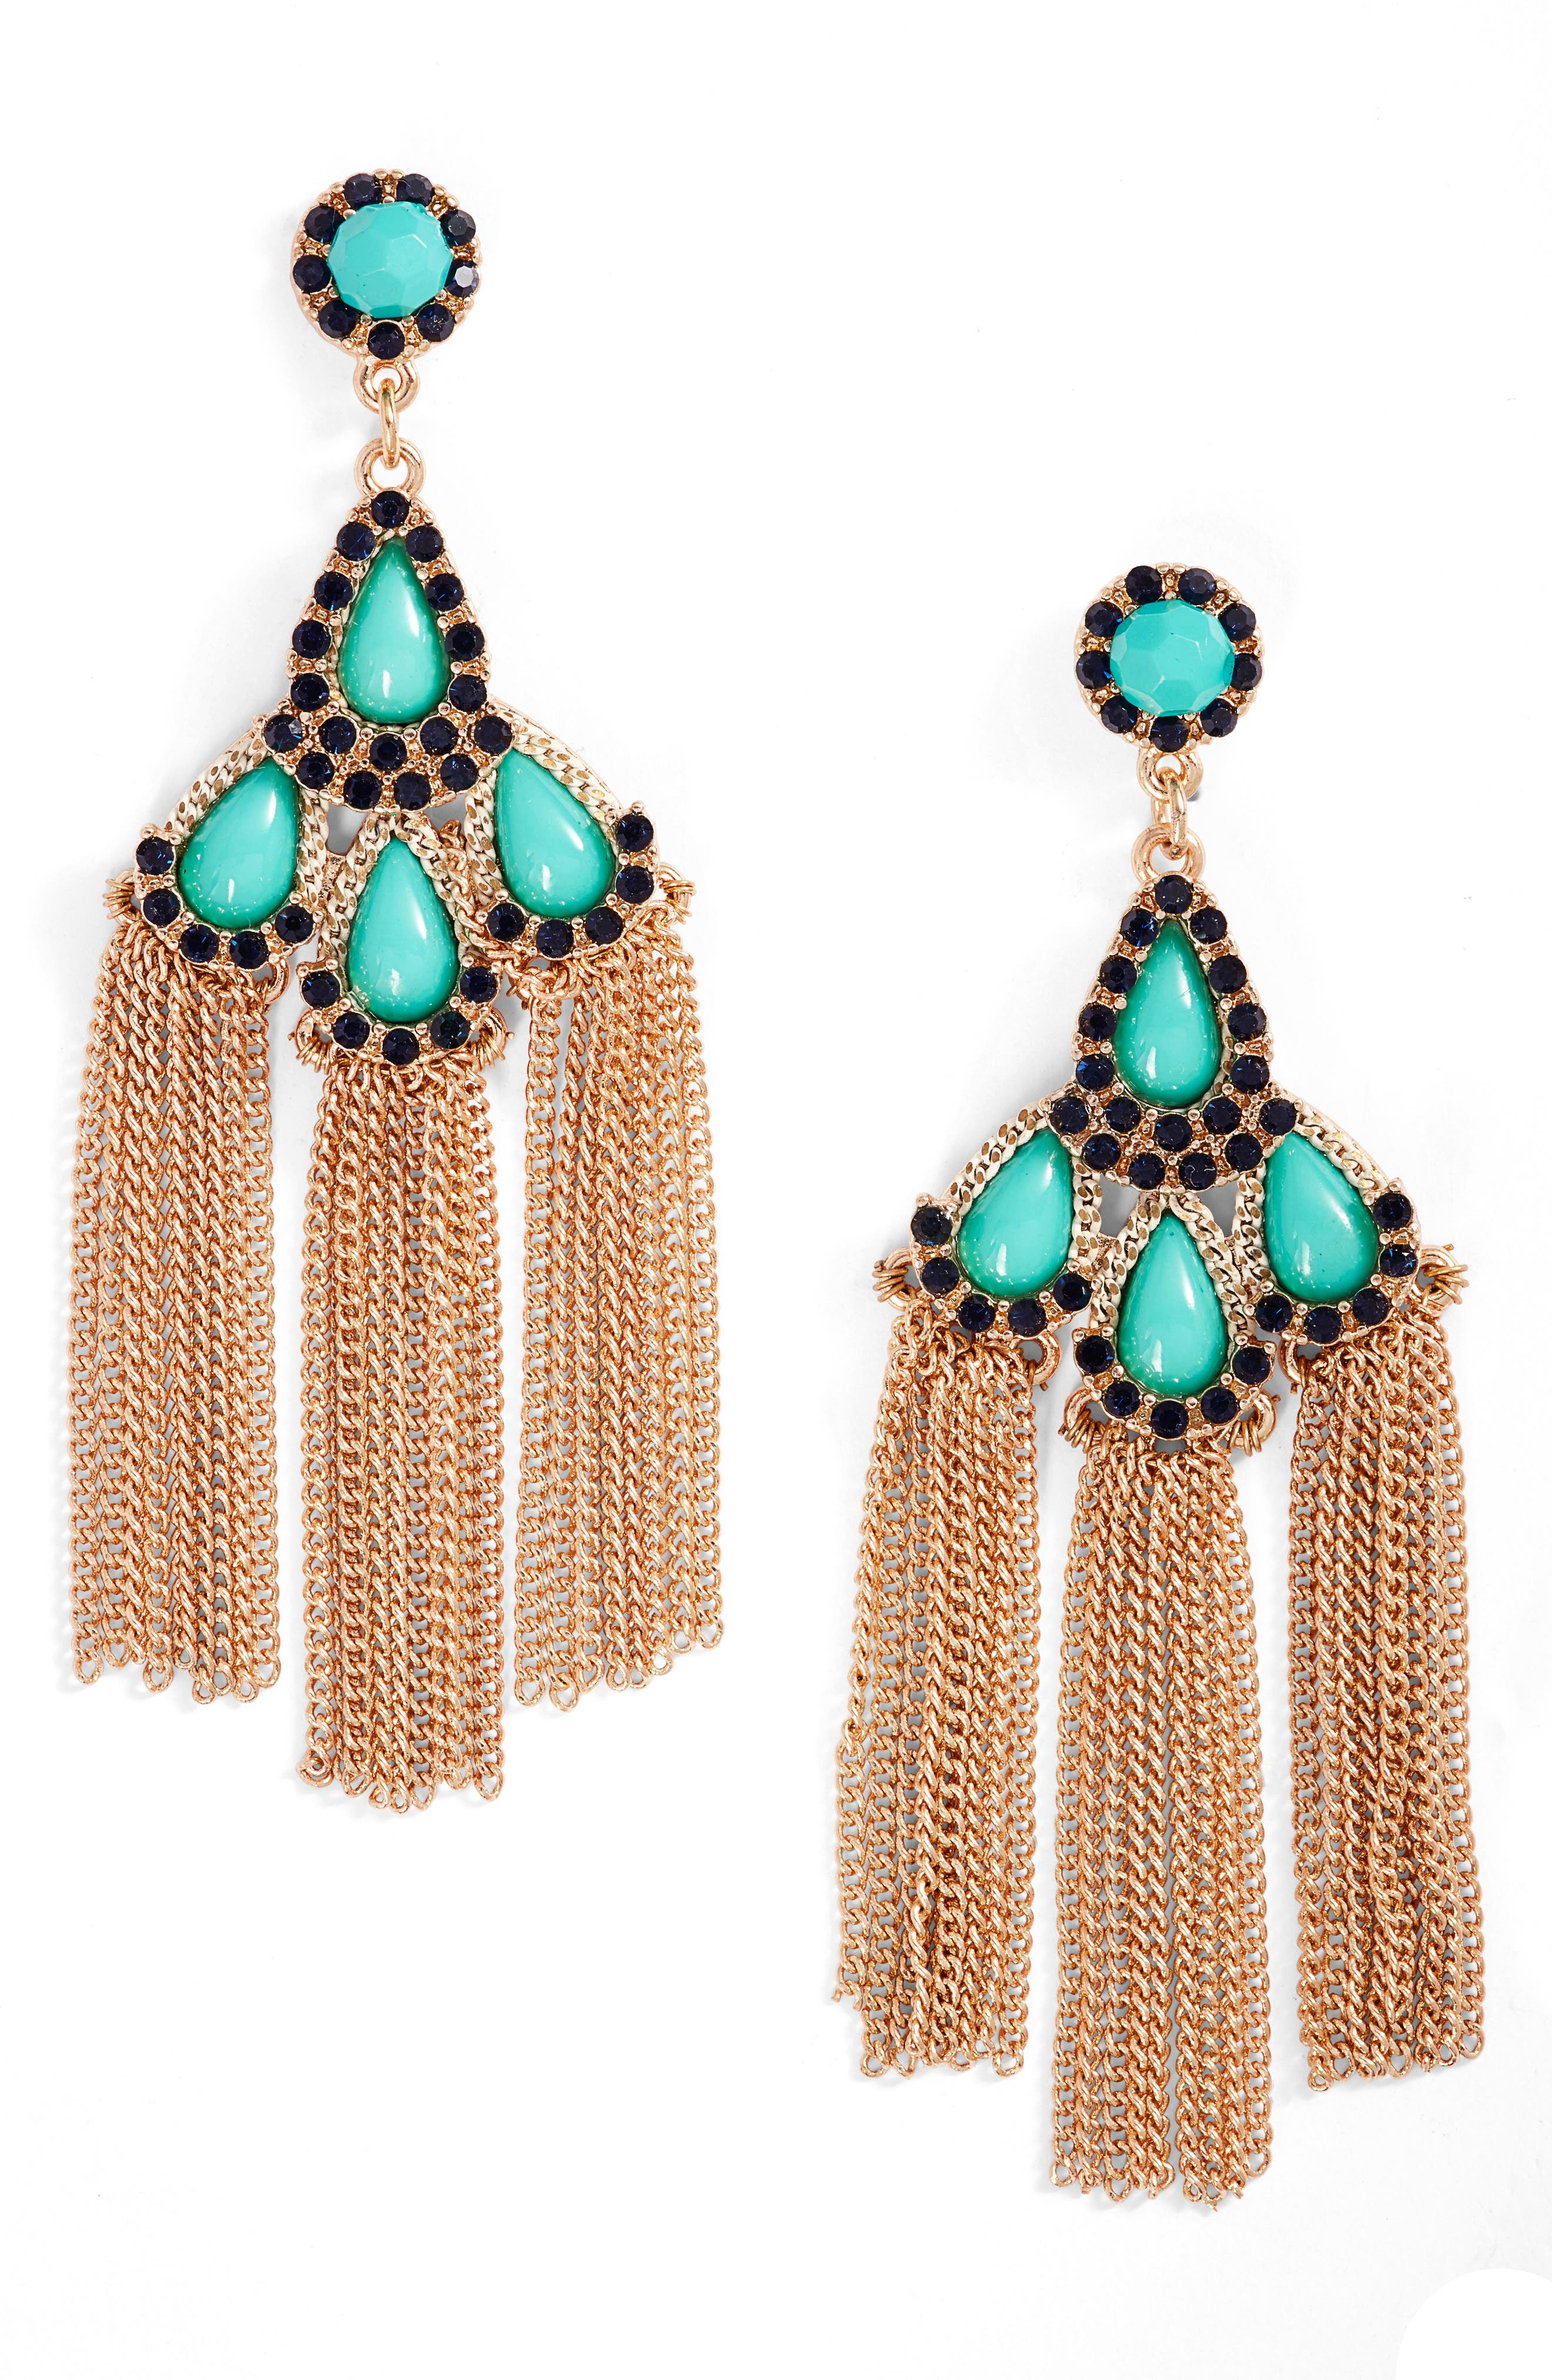 Chain Fringe Drop Earrings,                         Main,                         color, Turquoise